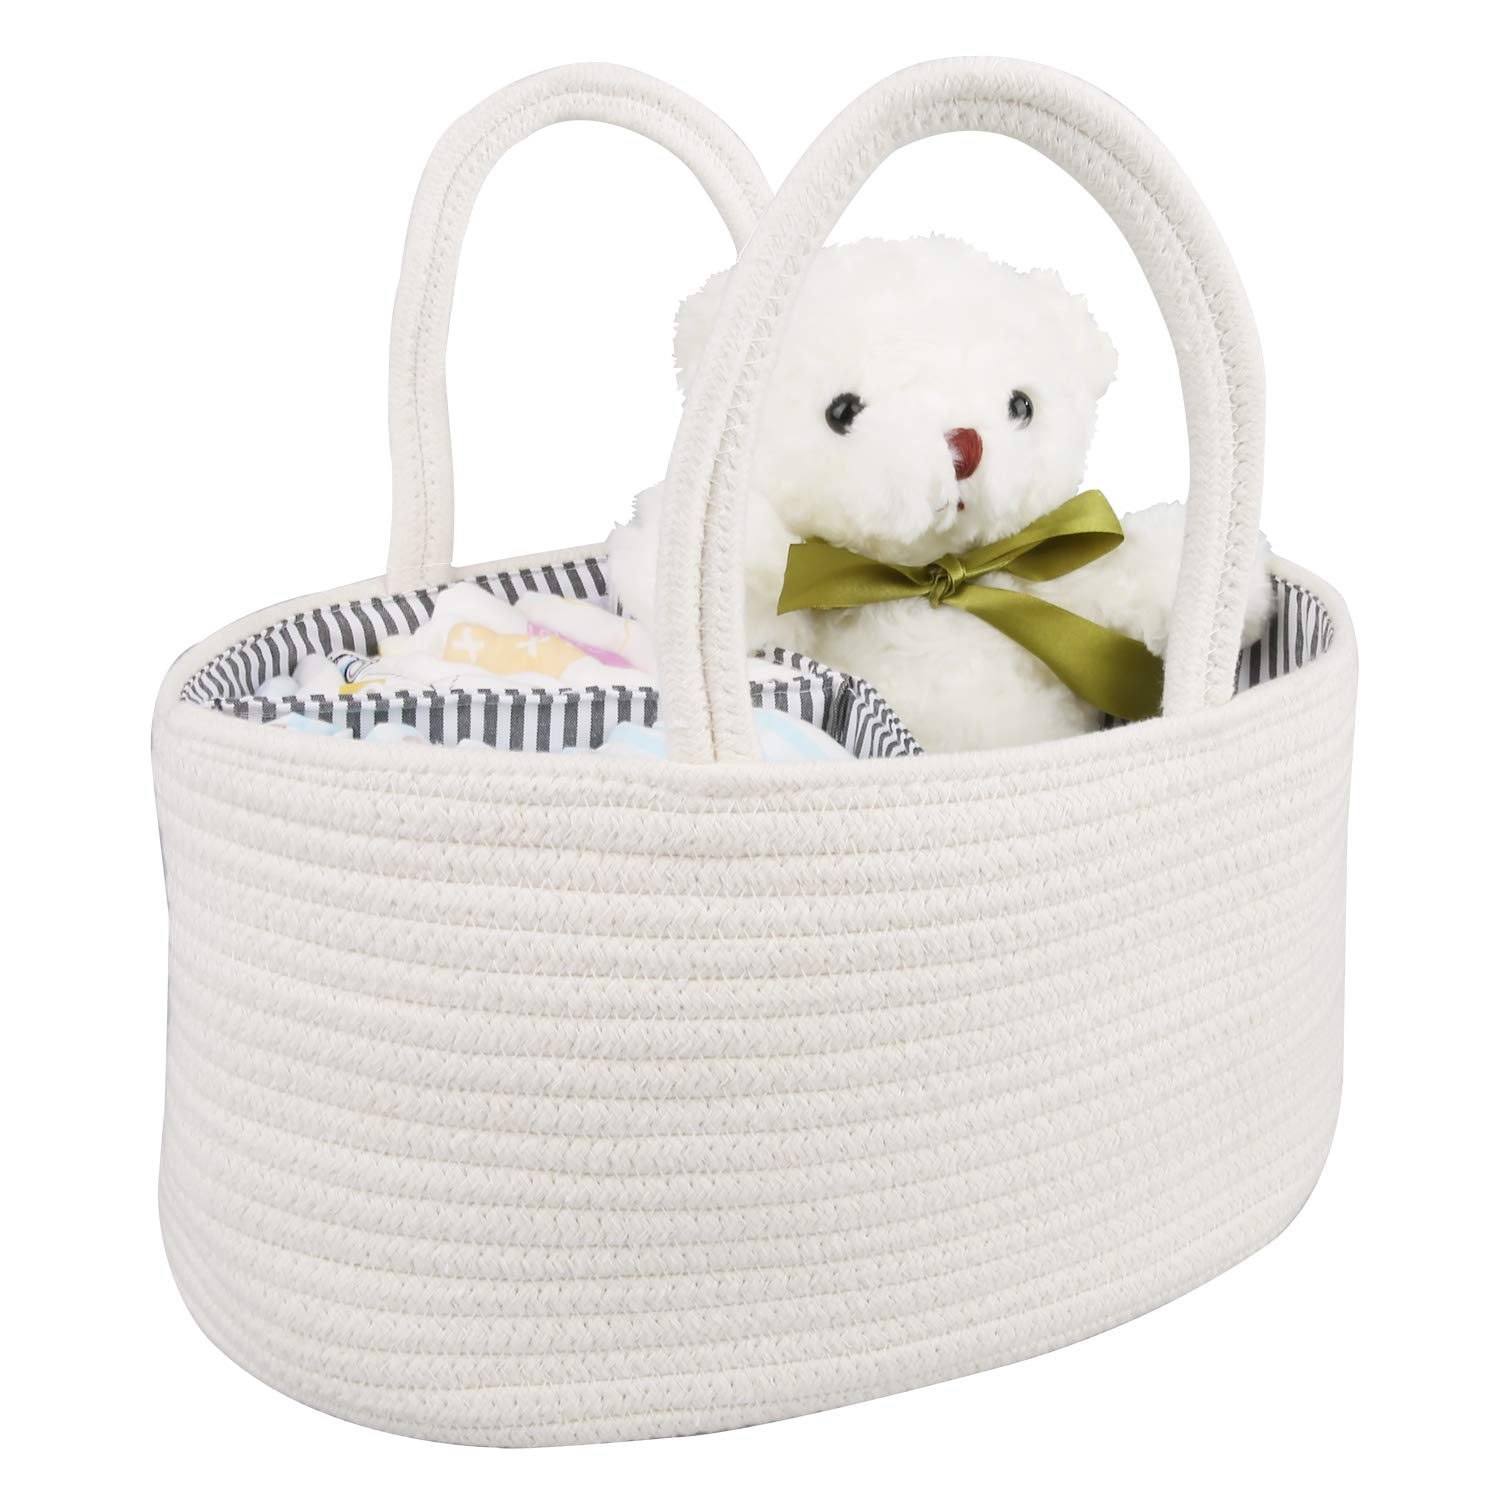 GESUNDHOME Cotton Rope Storage Basket - Stylish Rope Nursery Storage Bin for Changing Table & Car - Portable Carry Tote for Wipes, Diaper, Baby Essentials with Removable Inserts (White)